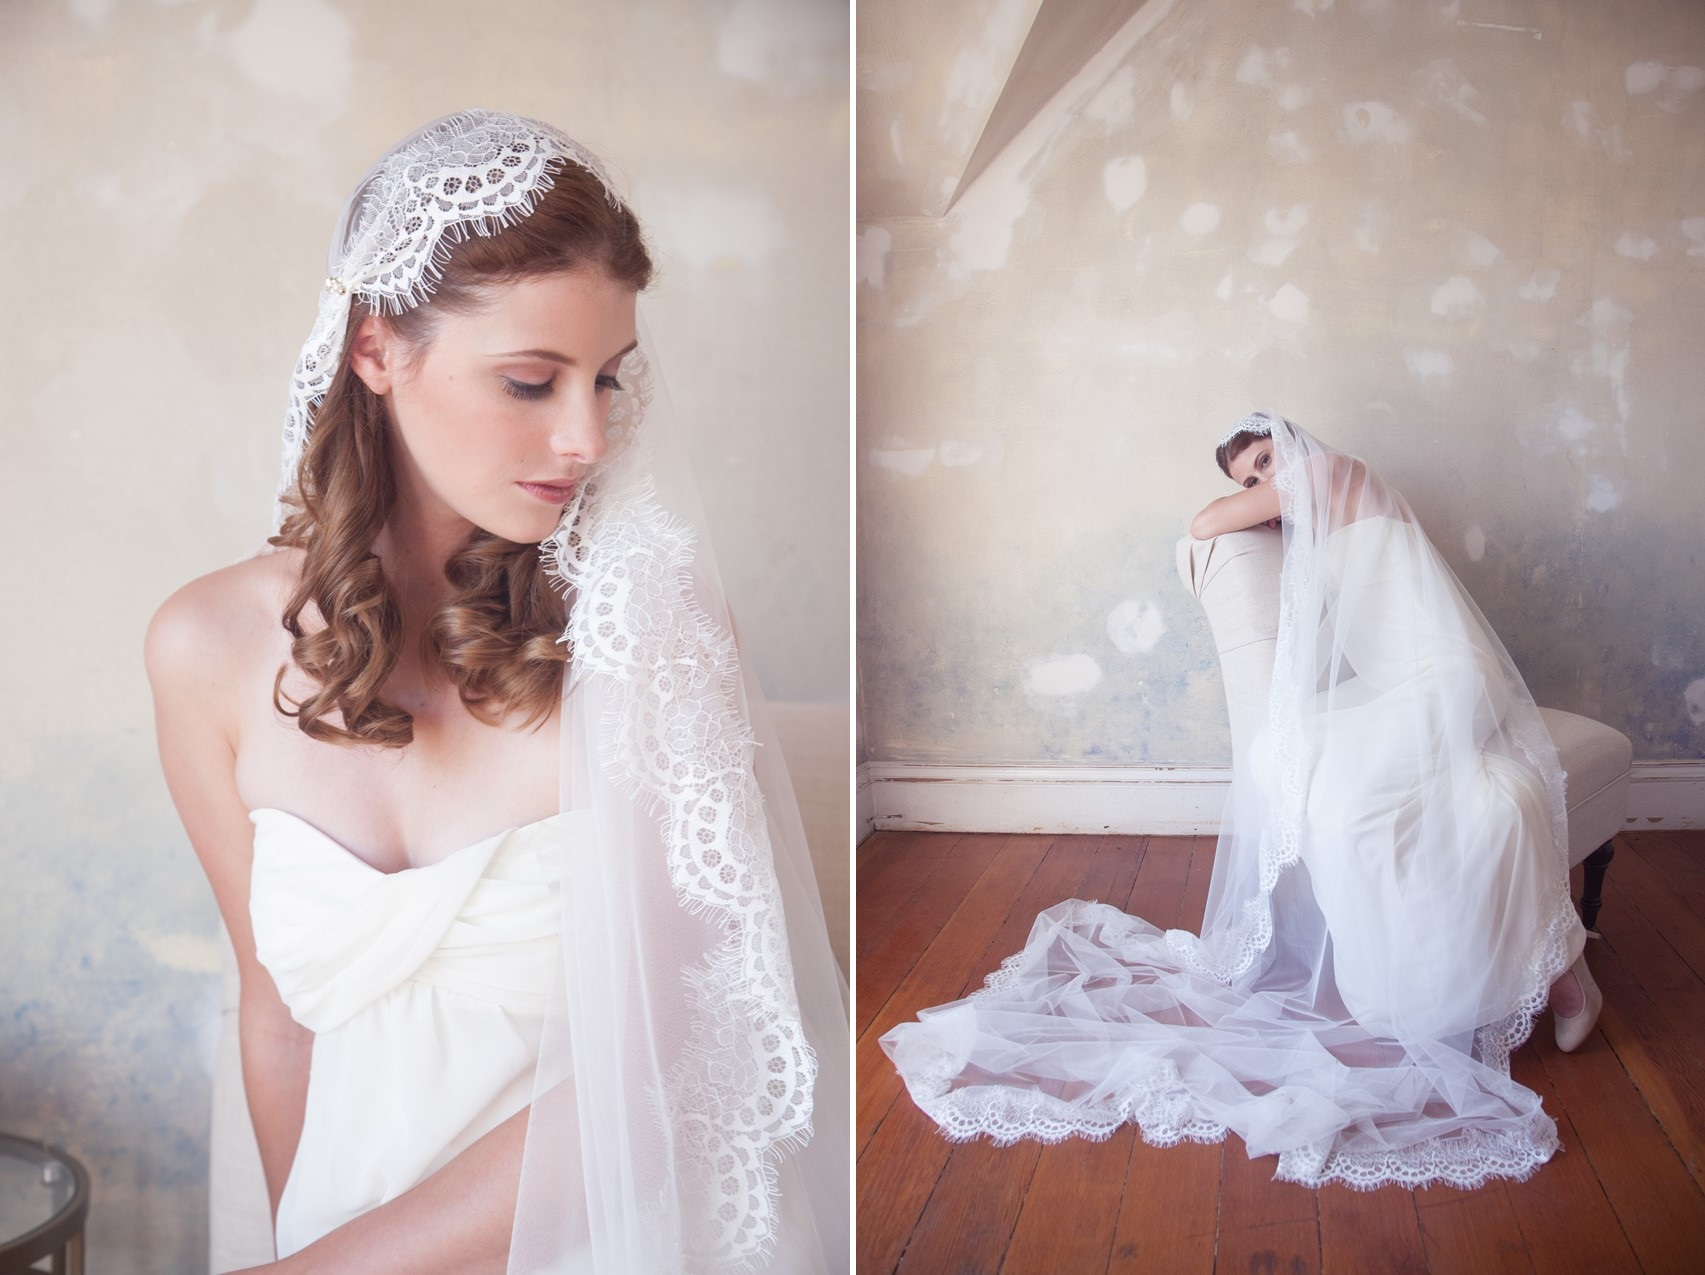 A New Collection of Exquisite Vintage Bridal Hair Accessories from Gilded Shadows